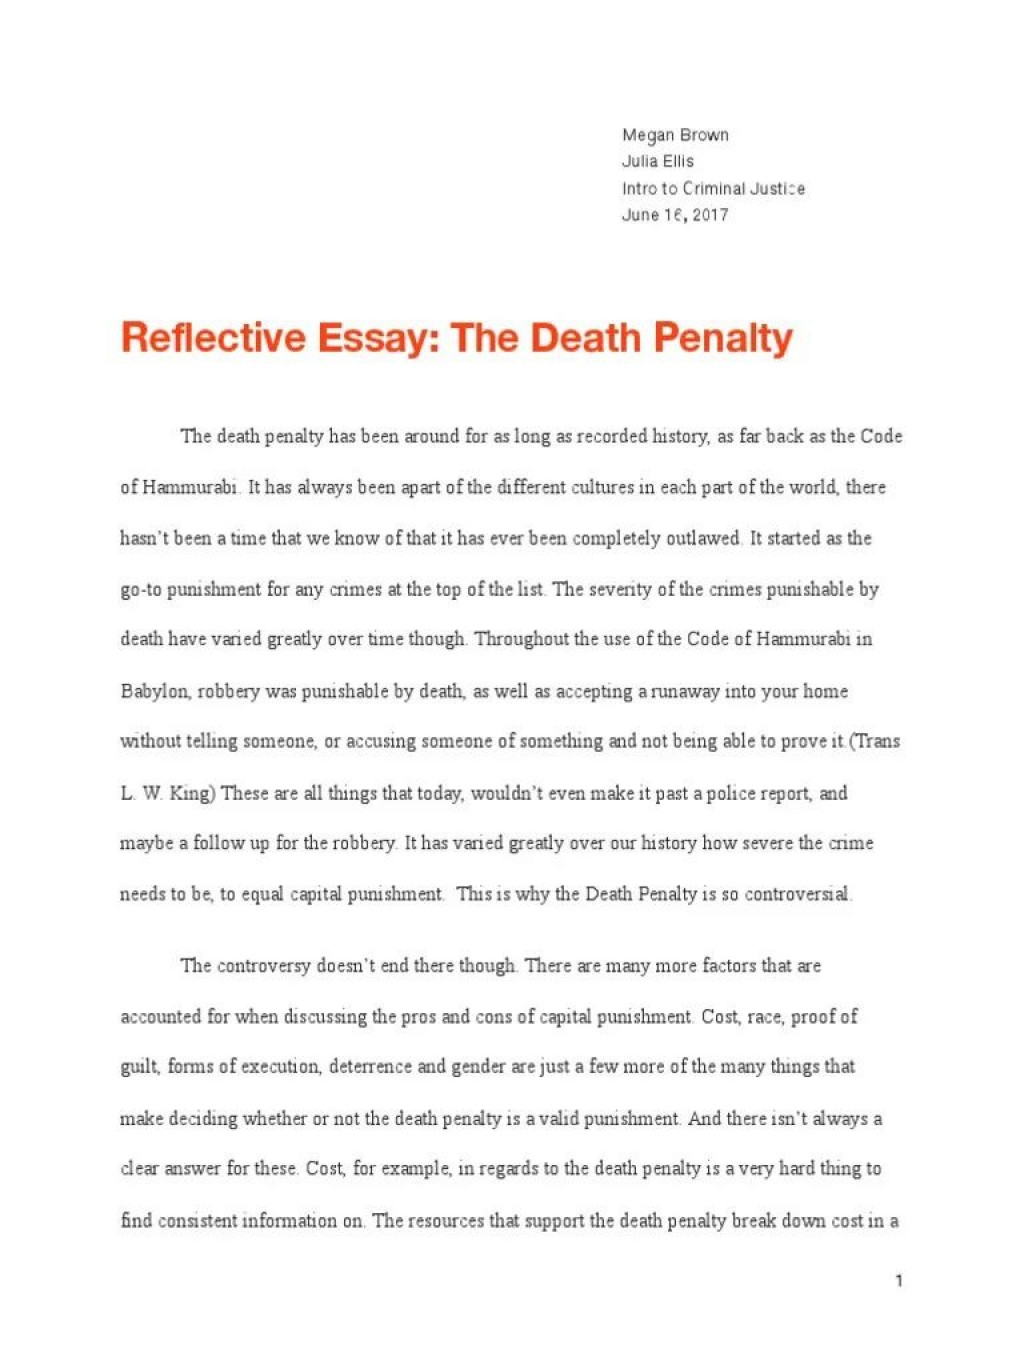 005 Awesome Capital Punishment Essay Photo  Ielt Simon In HindiLarge